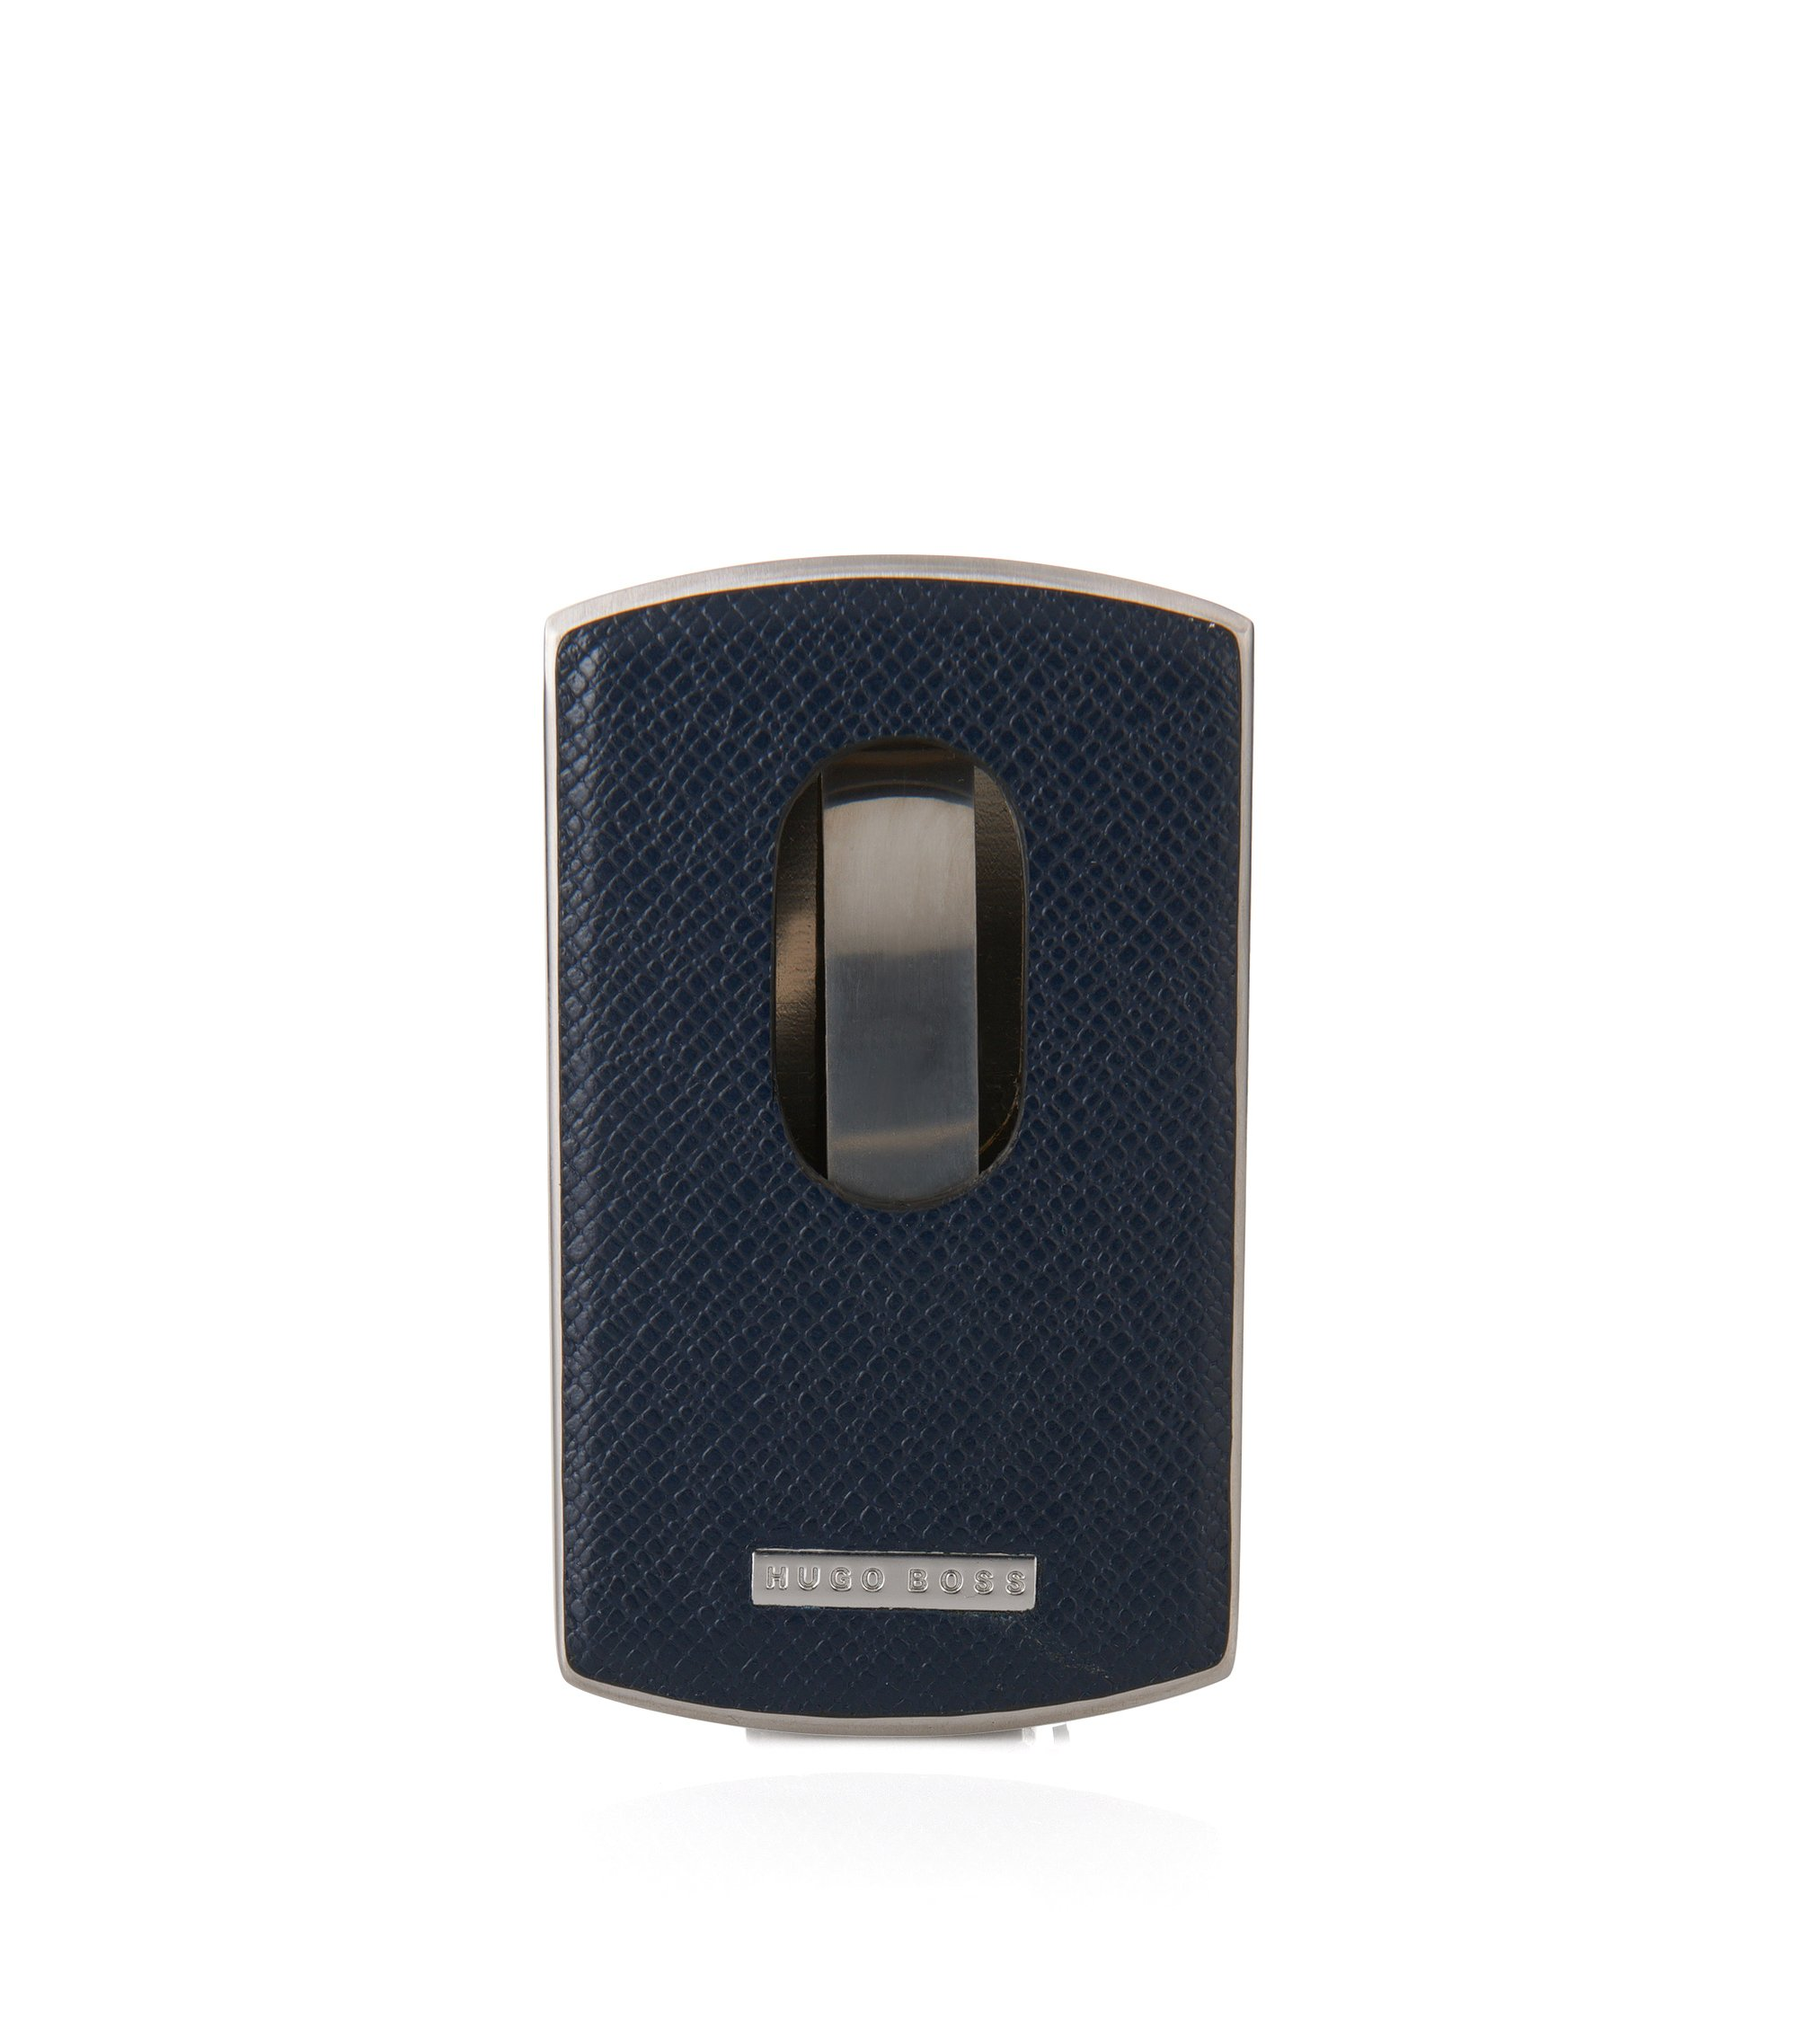 Signature Collection business card case in metal and leather, Dark Blue